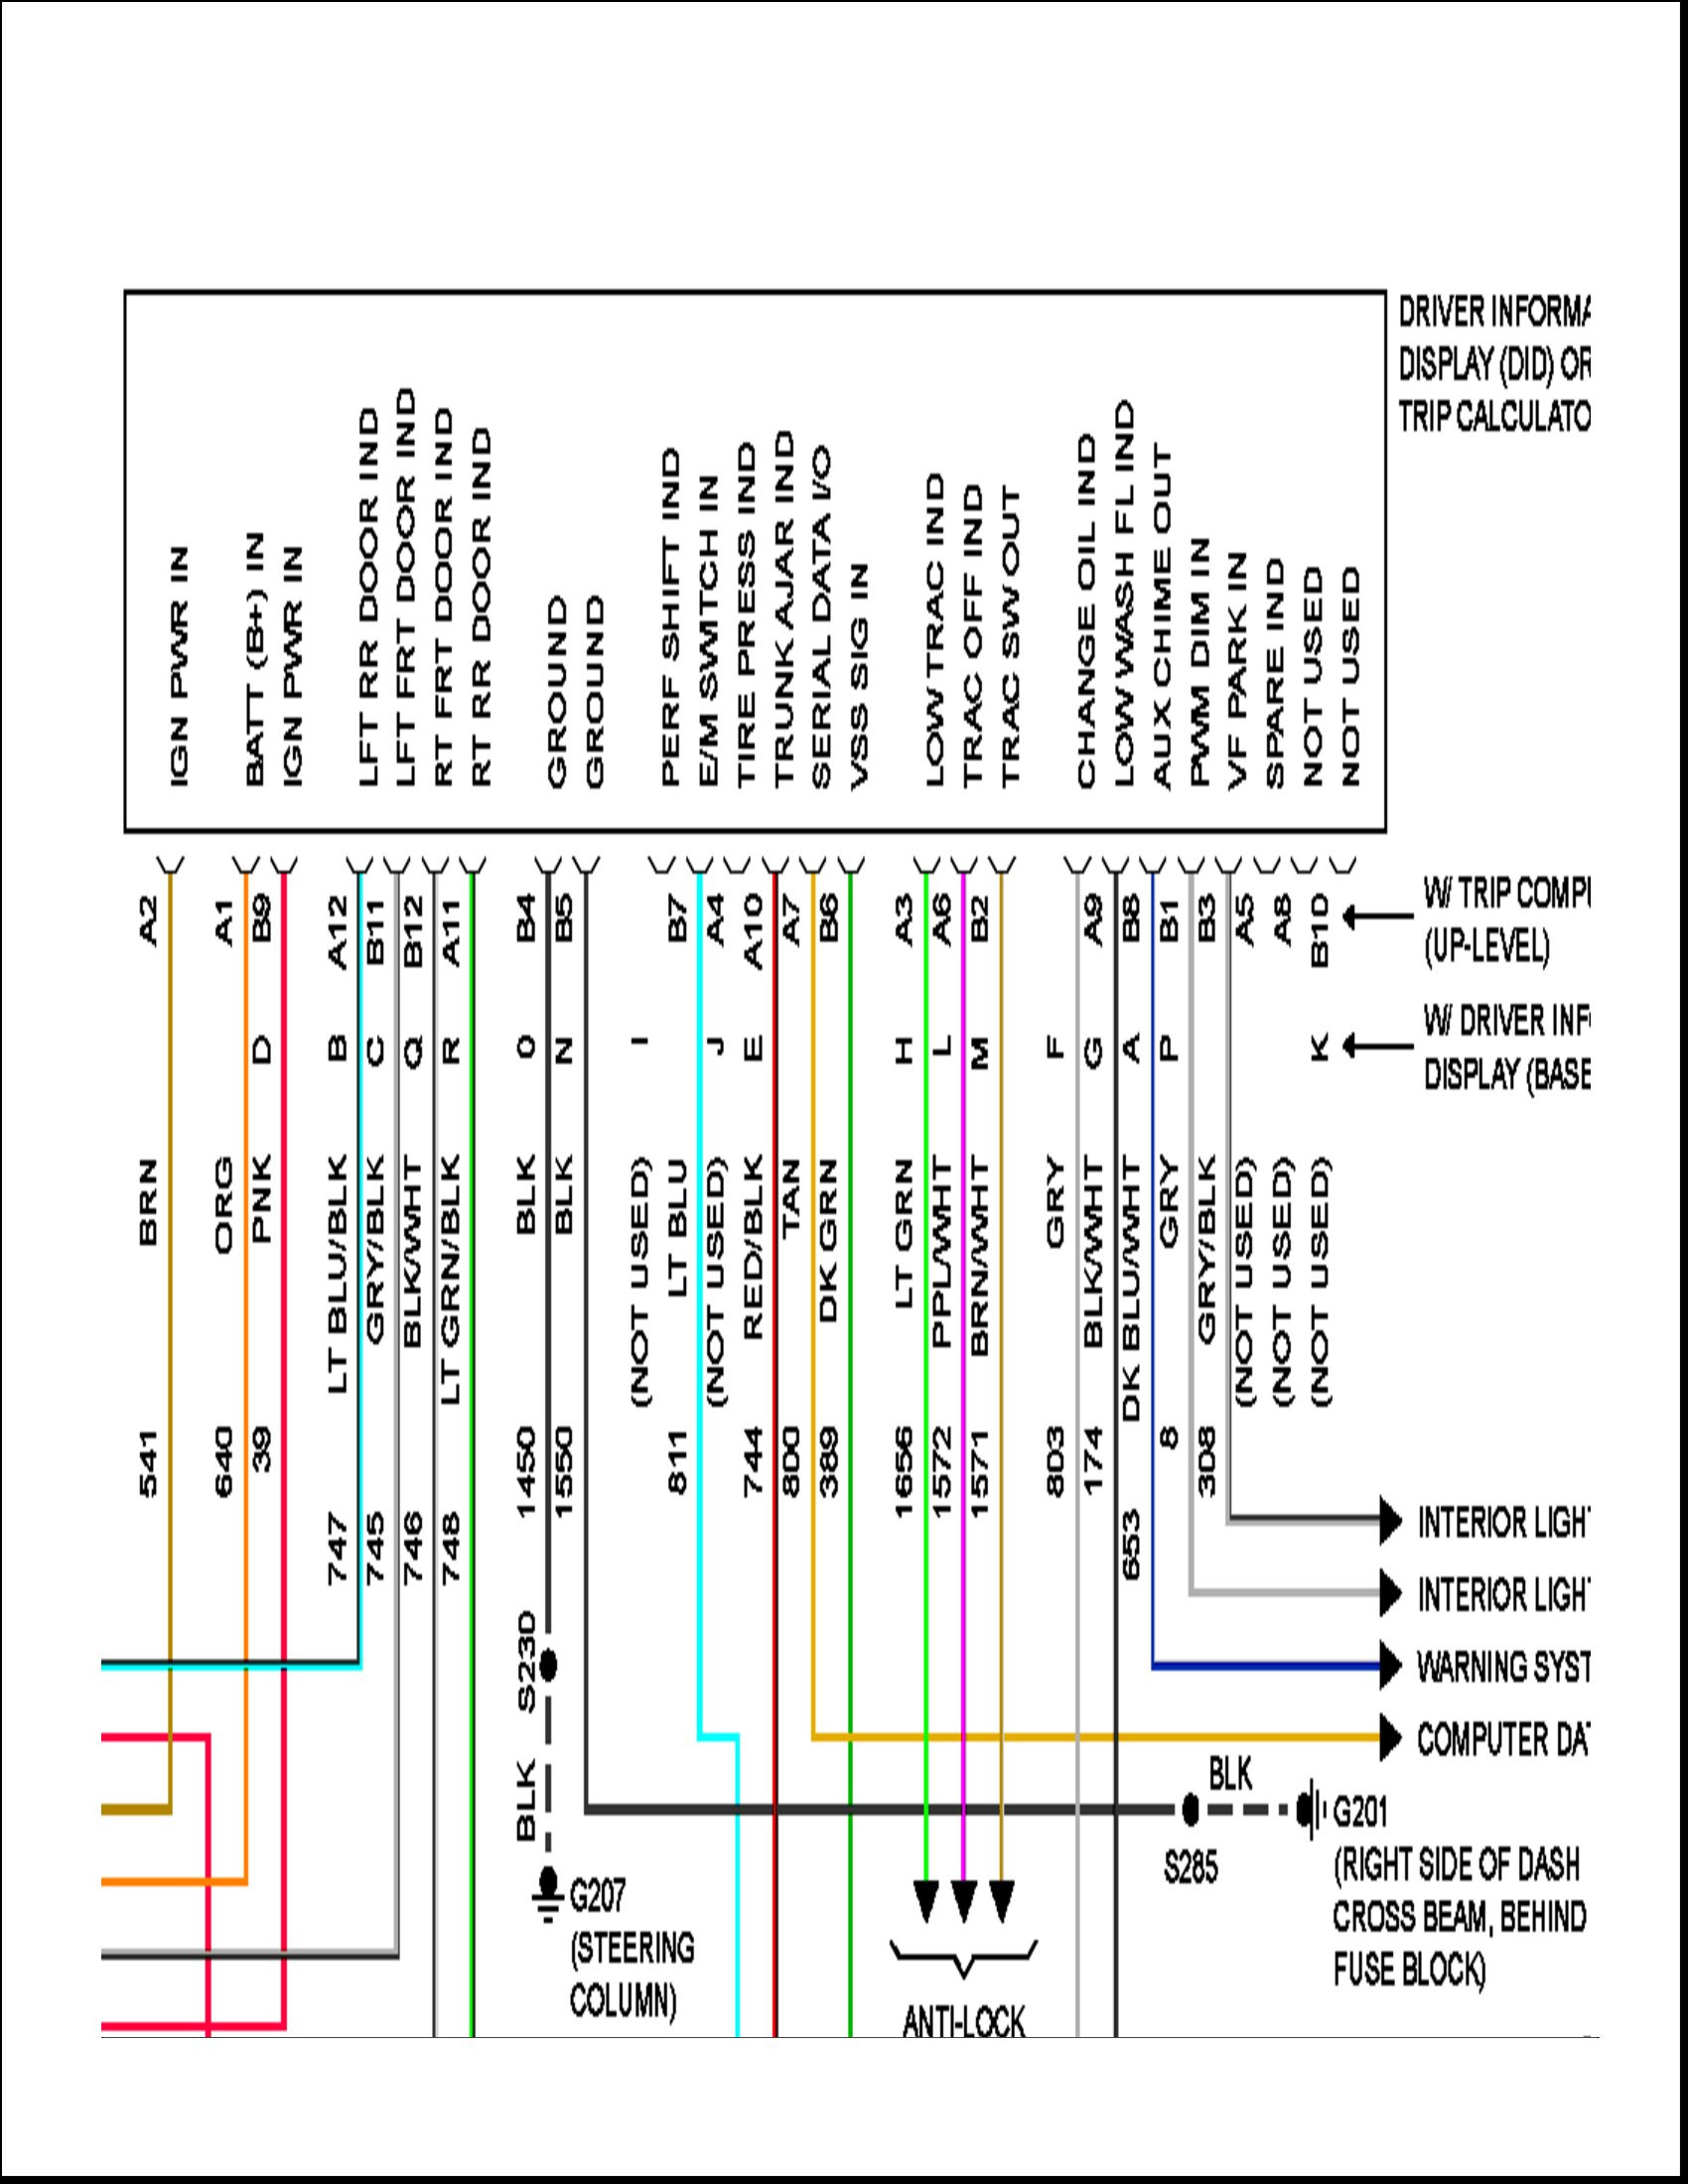 2003 Grand Am Monsoon Wiring Diagram